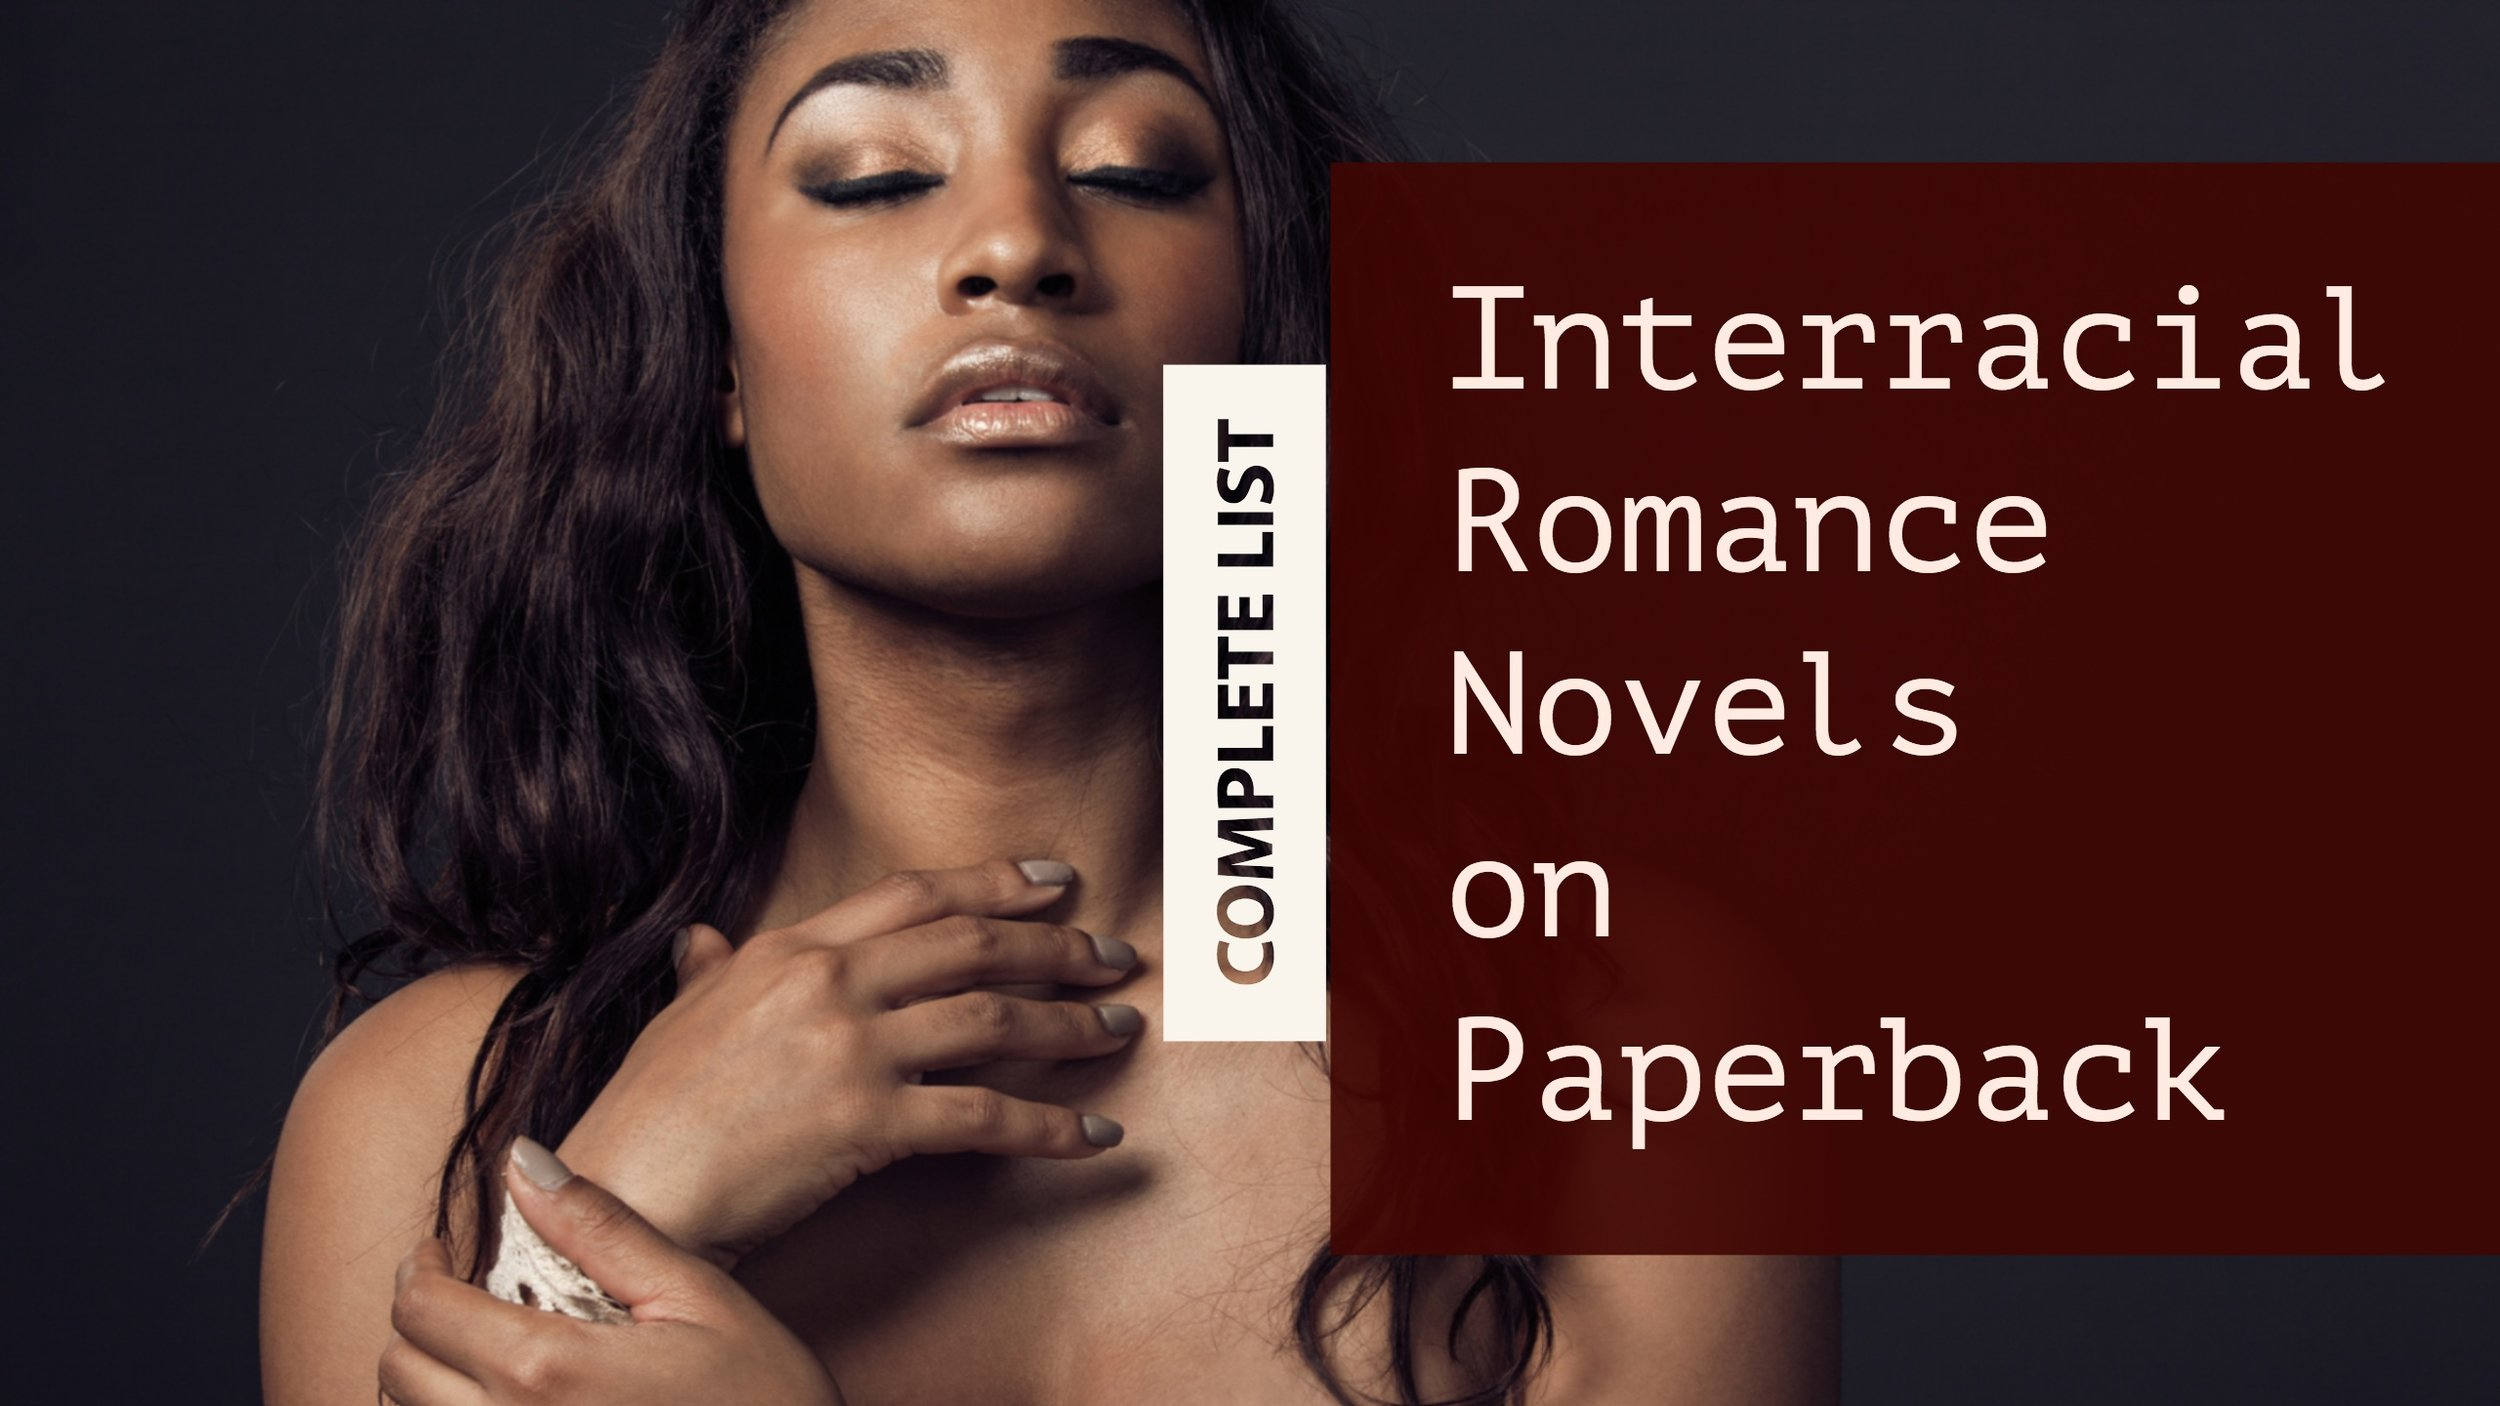 interracial romance novel paperback bwwm romance